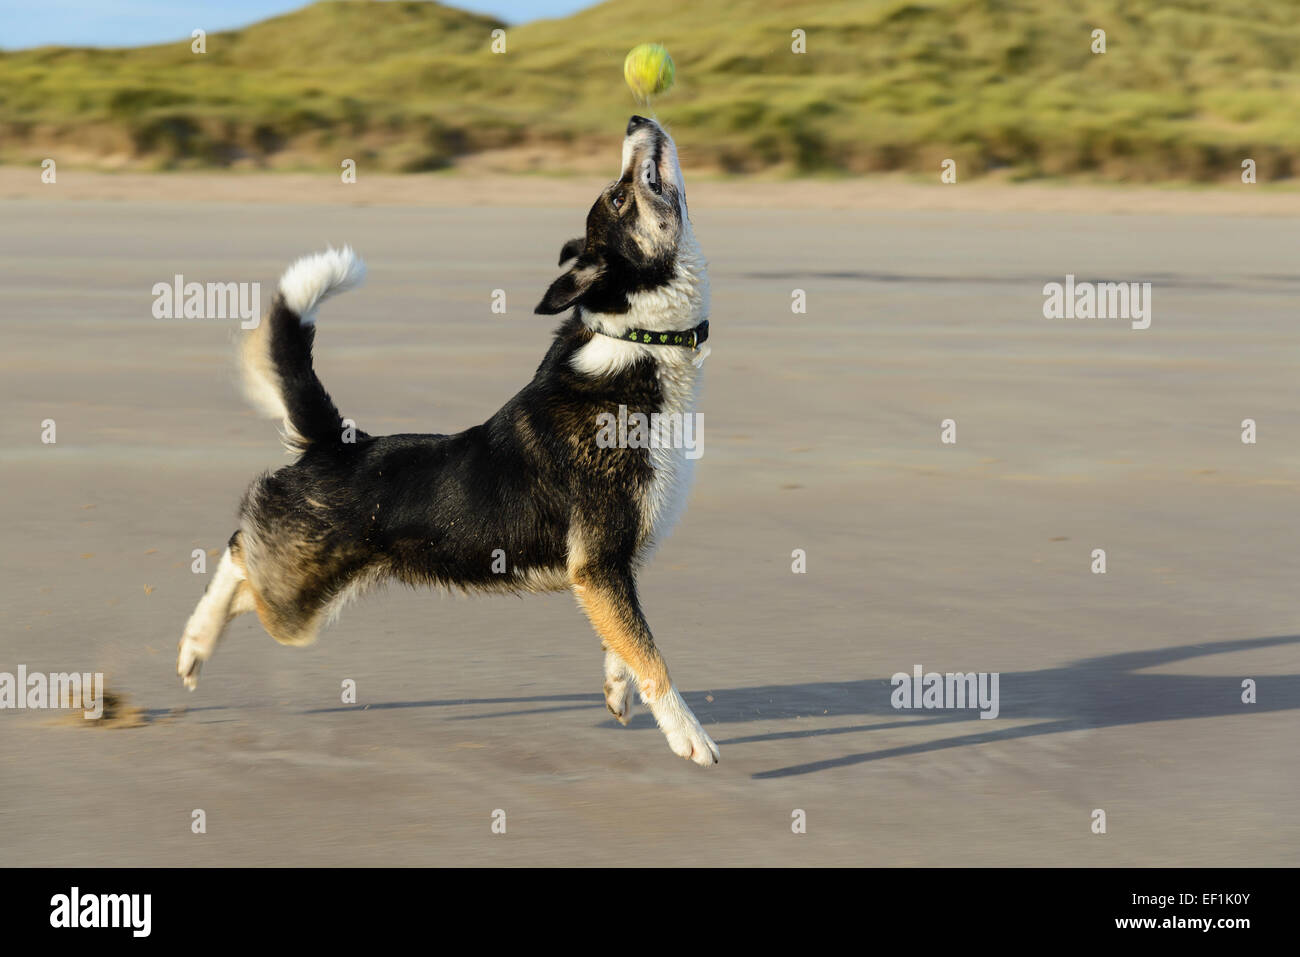 Border collie dog with tennis ball on Seahouses beach, Northumberland, England - Stock Image